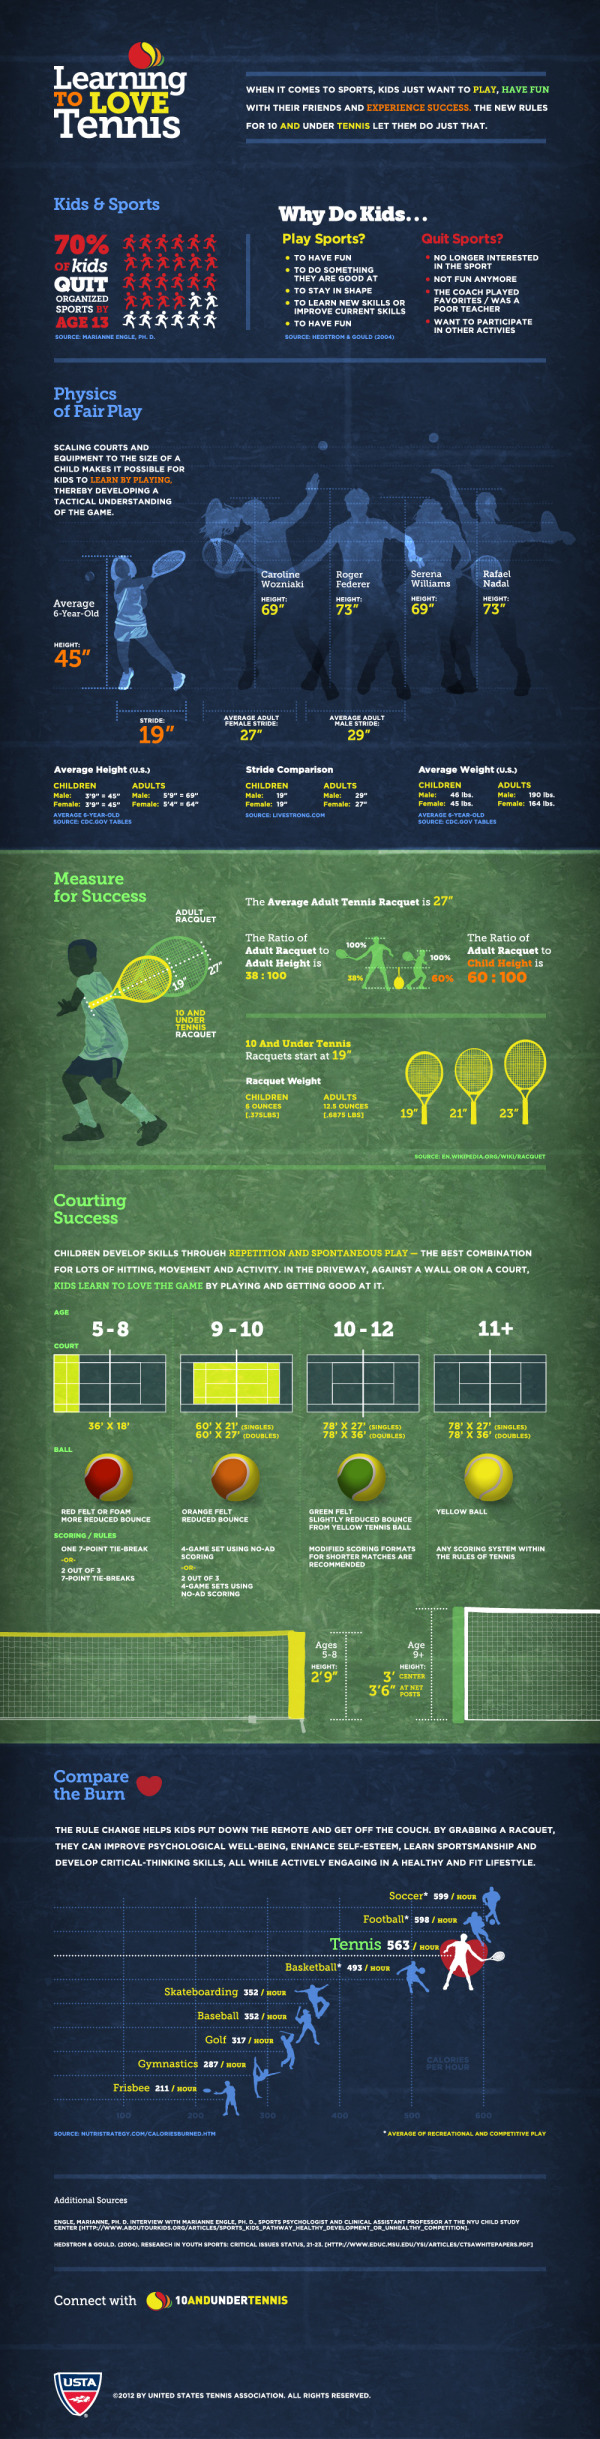 Learning to Love Tennis infosgraphic